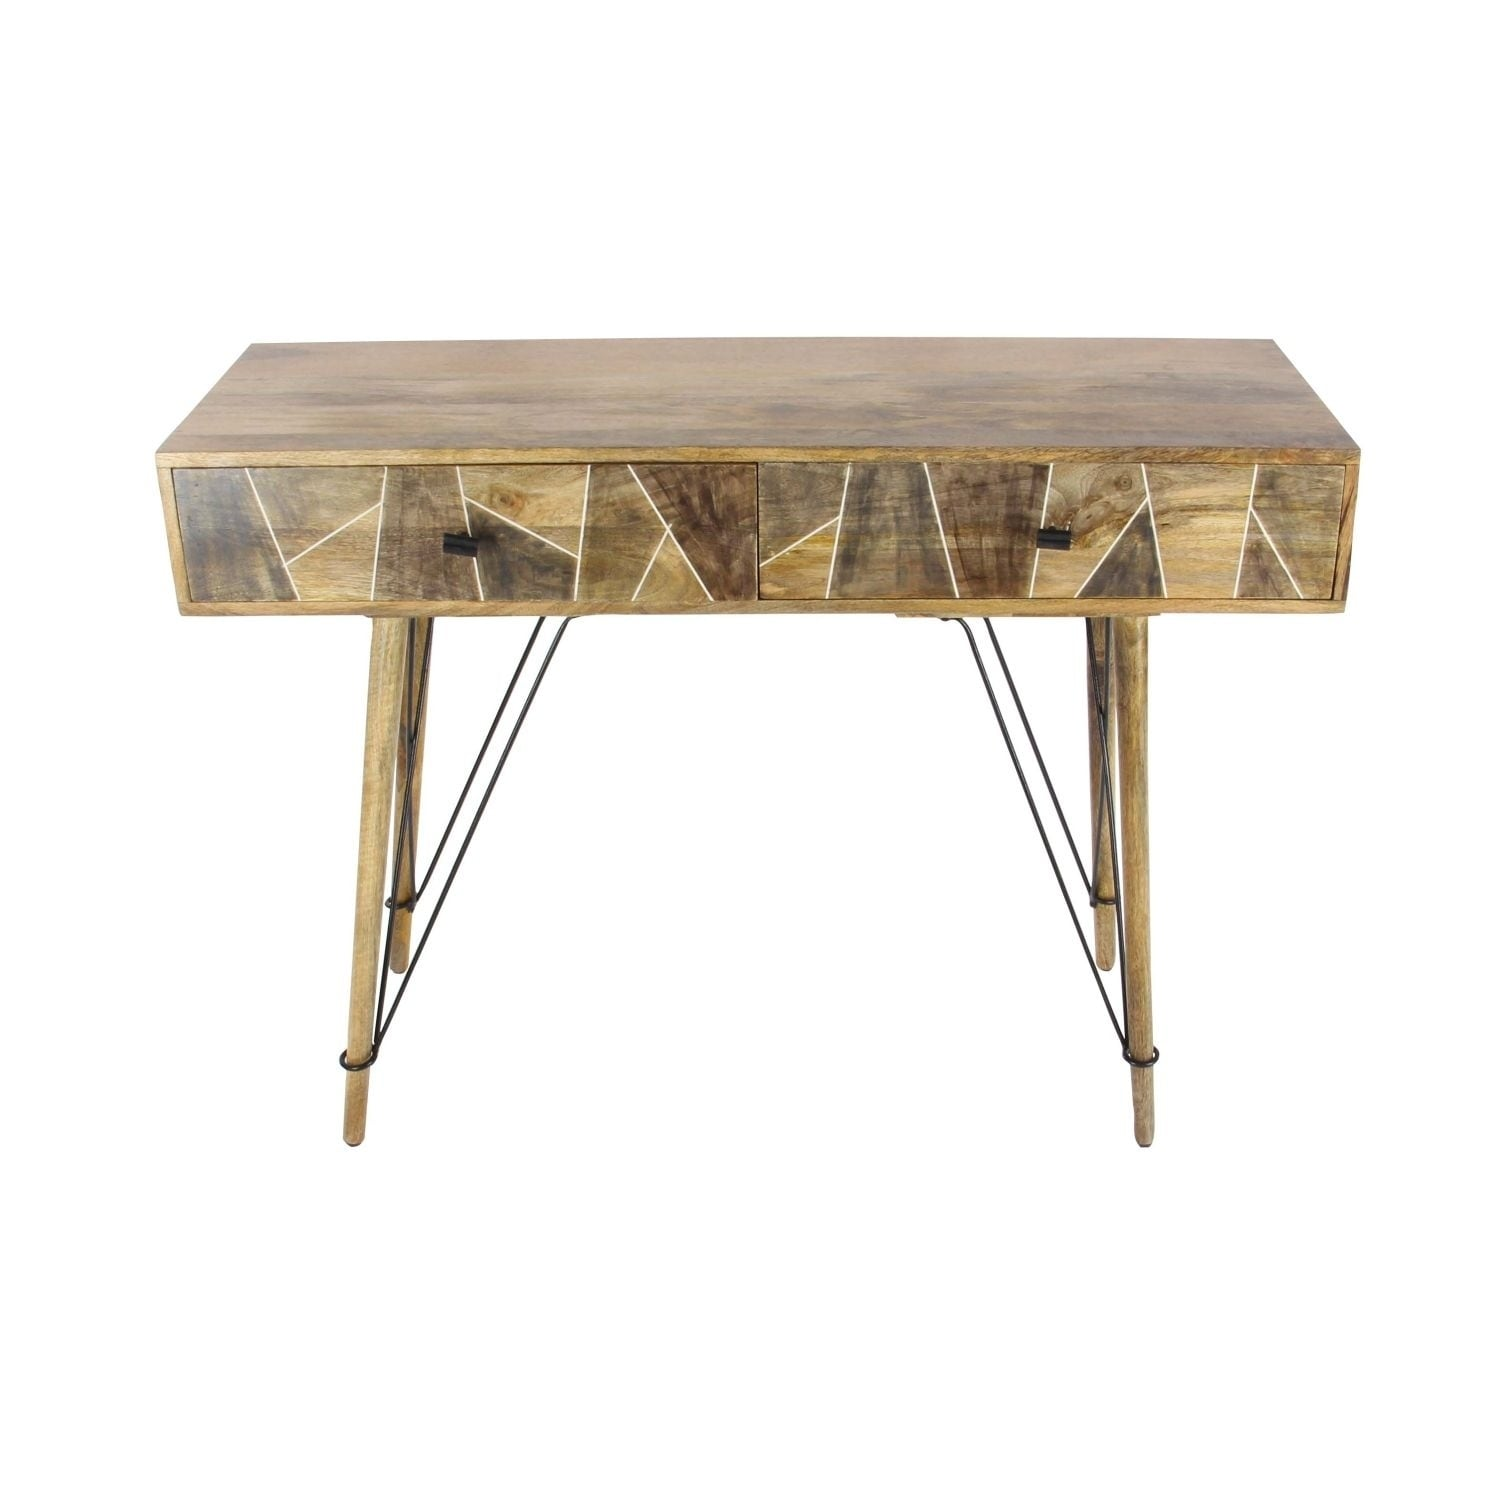 Studio 350 Wood Metal Console Table 47 Inches Wide 34 High On Free Shipping Today 17629640